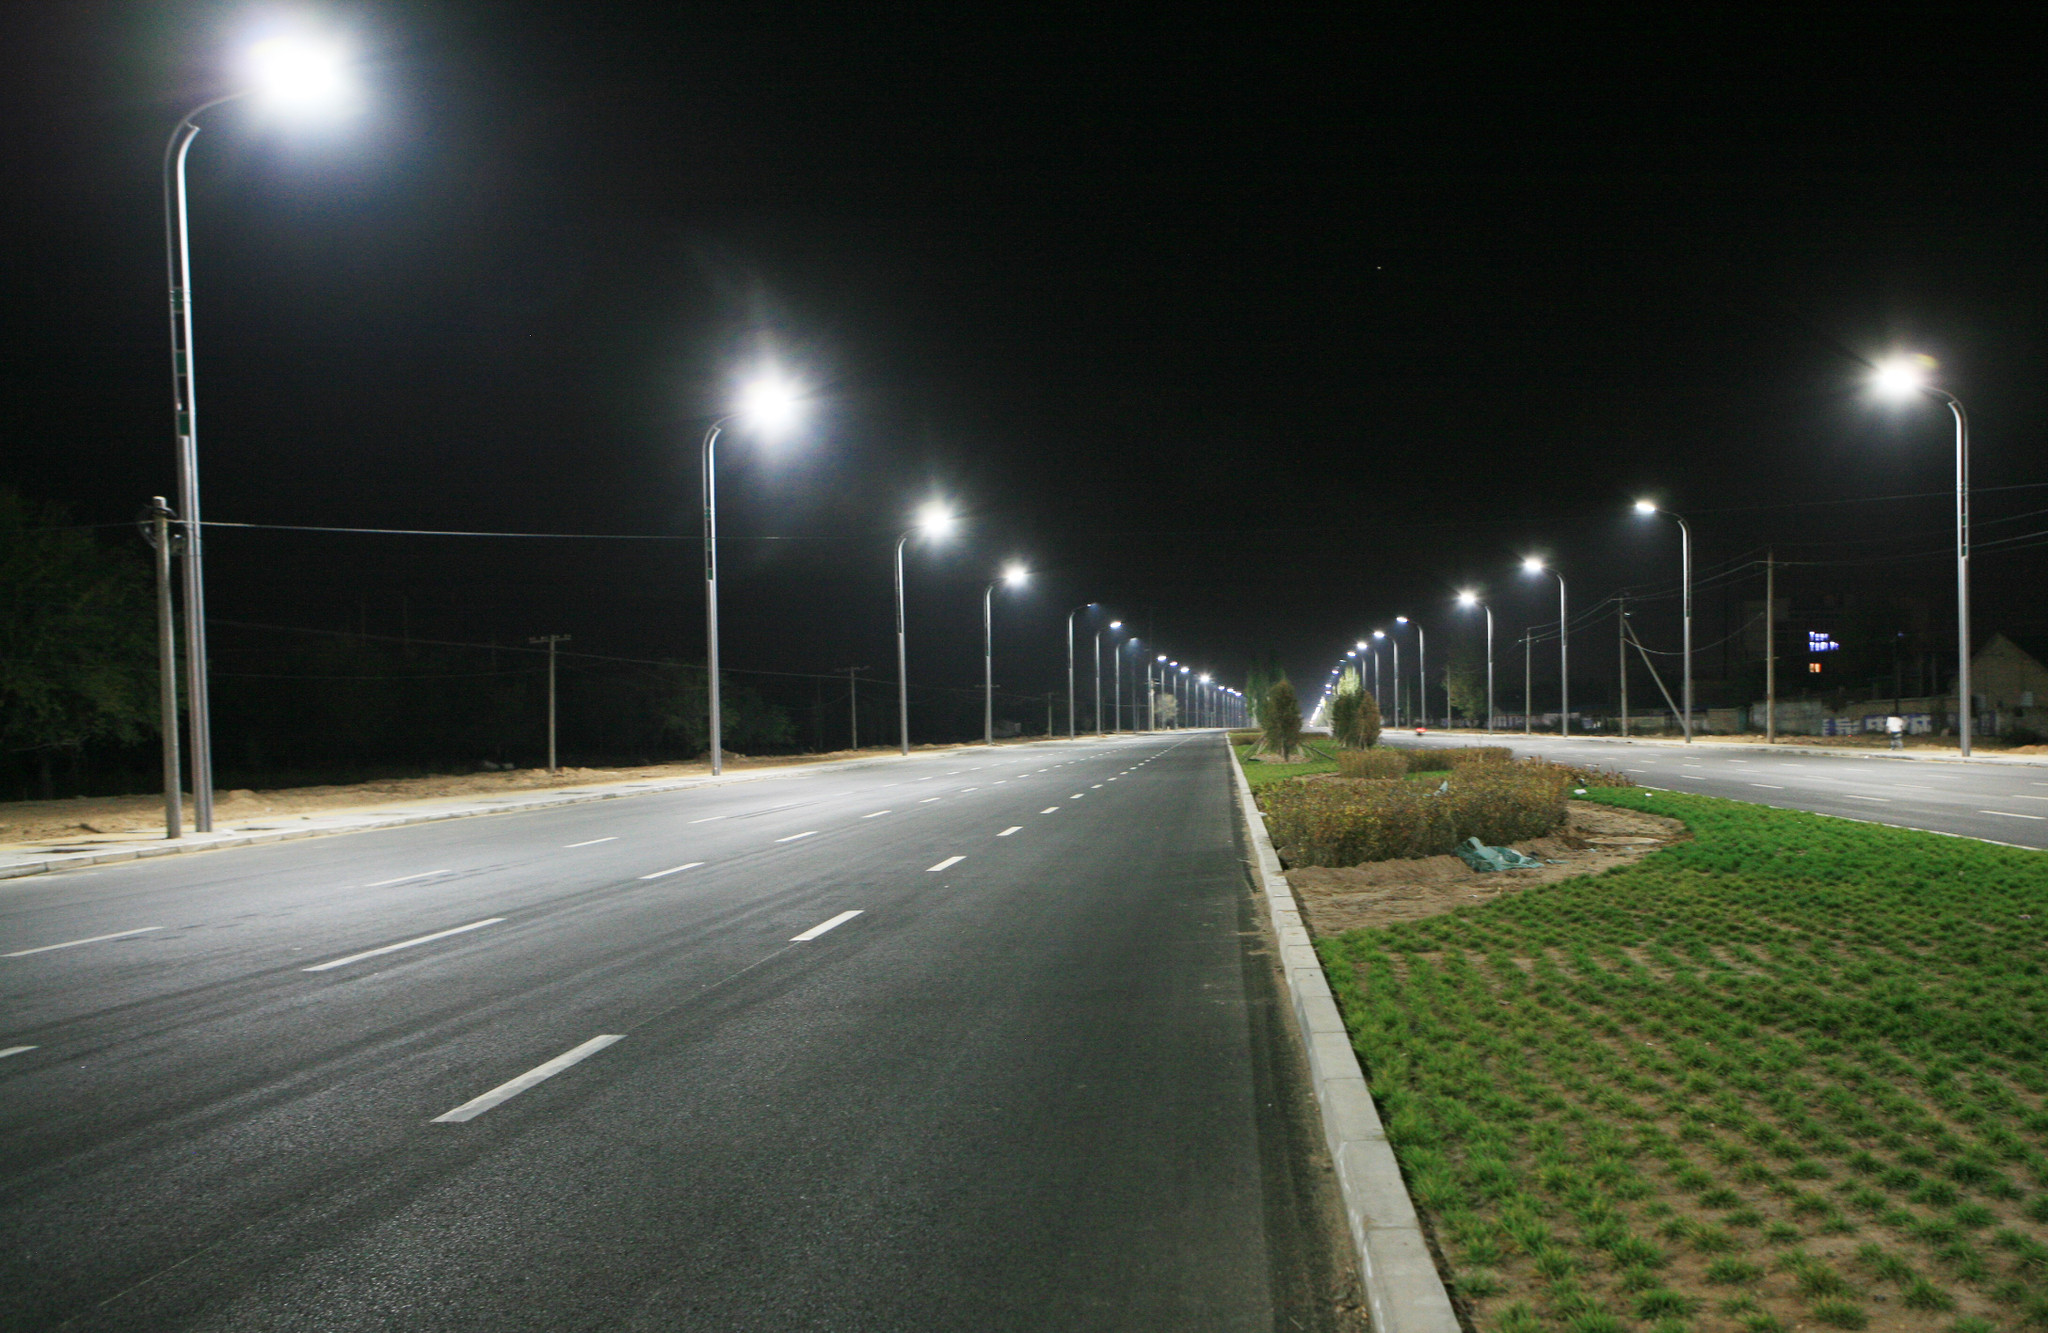 the importance of street lighting construction essay Explore research topics for quick access to content collections about important people, events and issues start your free, 7-day trial research for any need ideal for students and professionals, our deep research database  highbeam research provides the full story on important issues with over 20 years of published research.